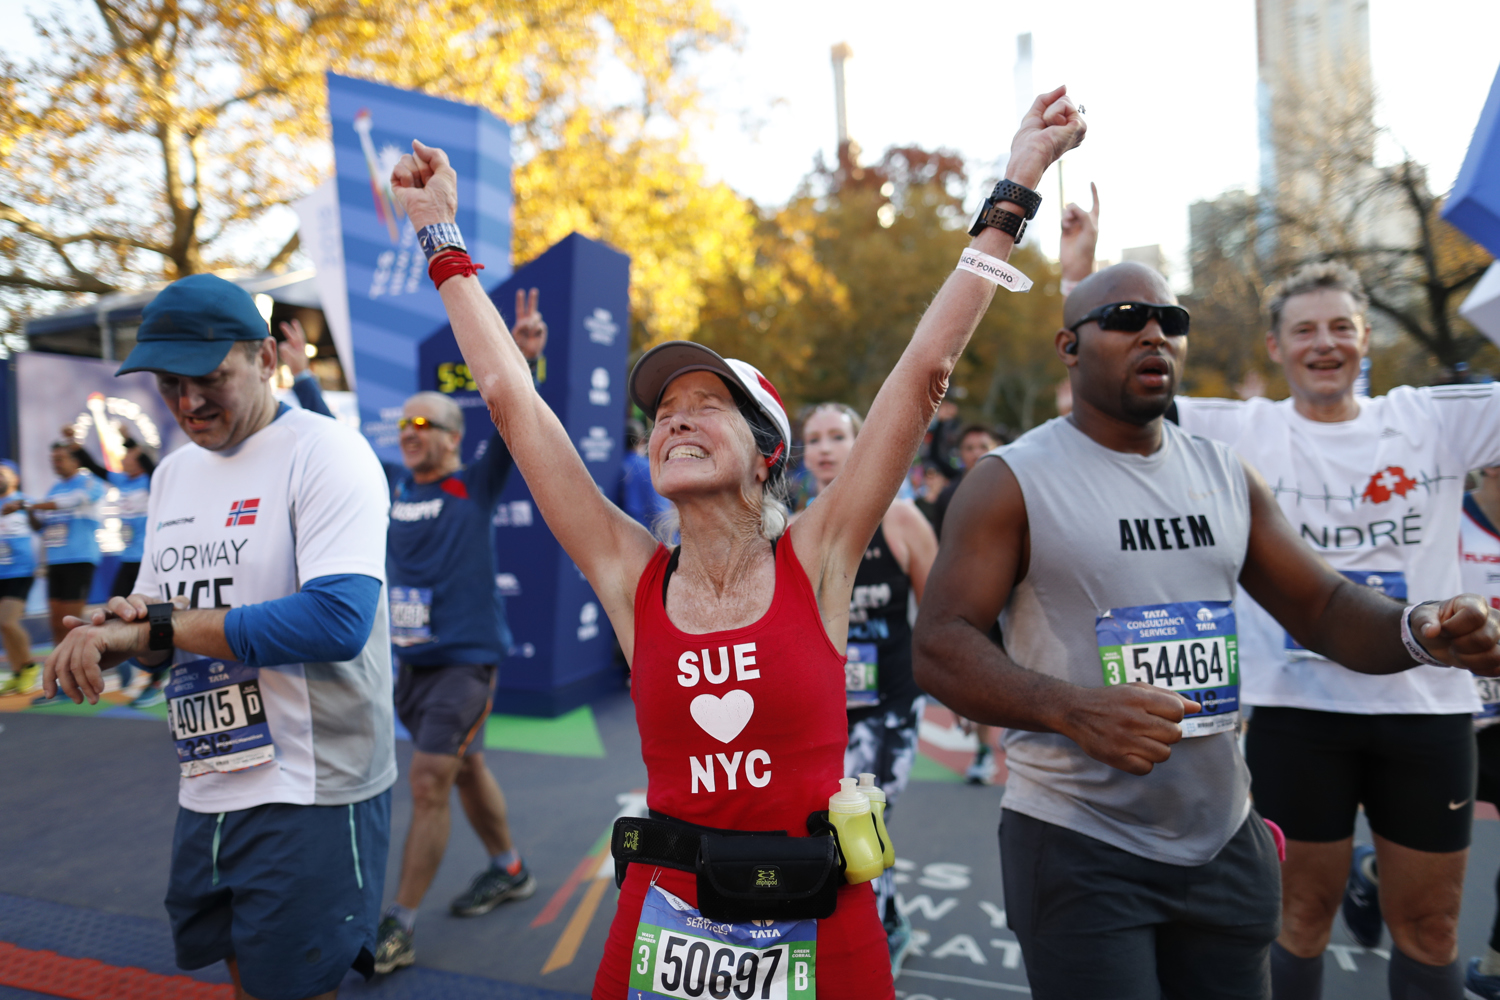 A runner celebrating after crossing the finish line of the New York City Marathon